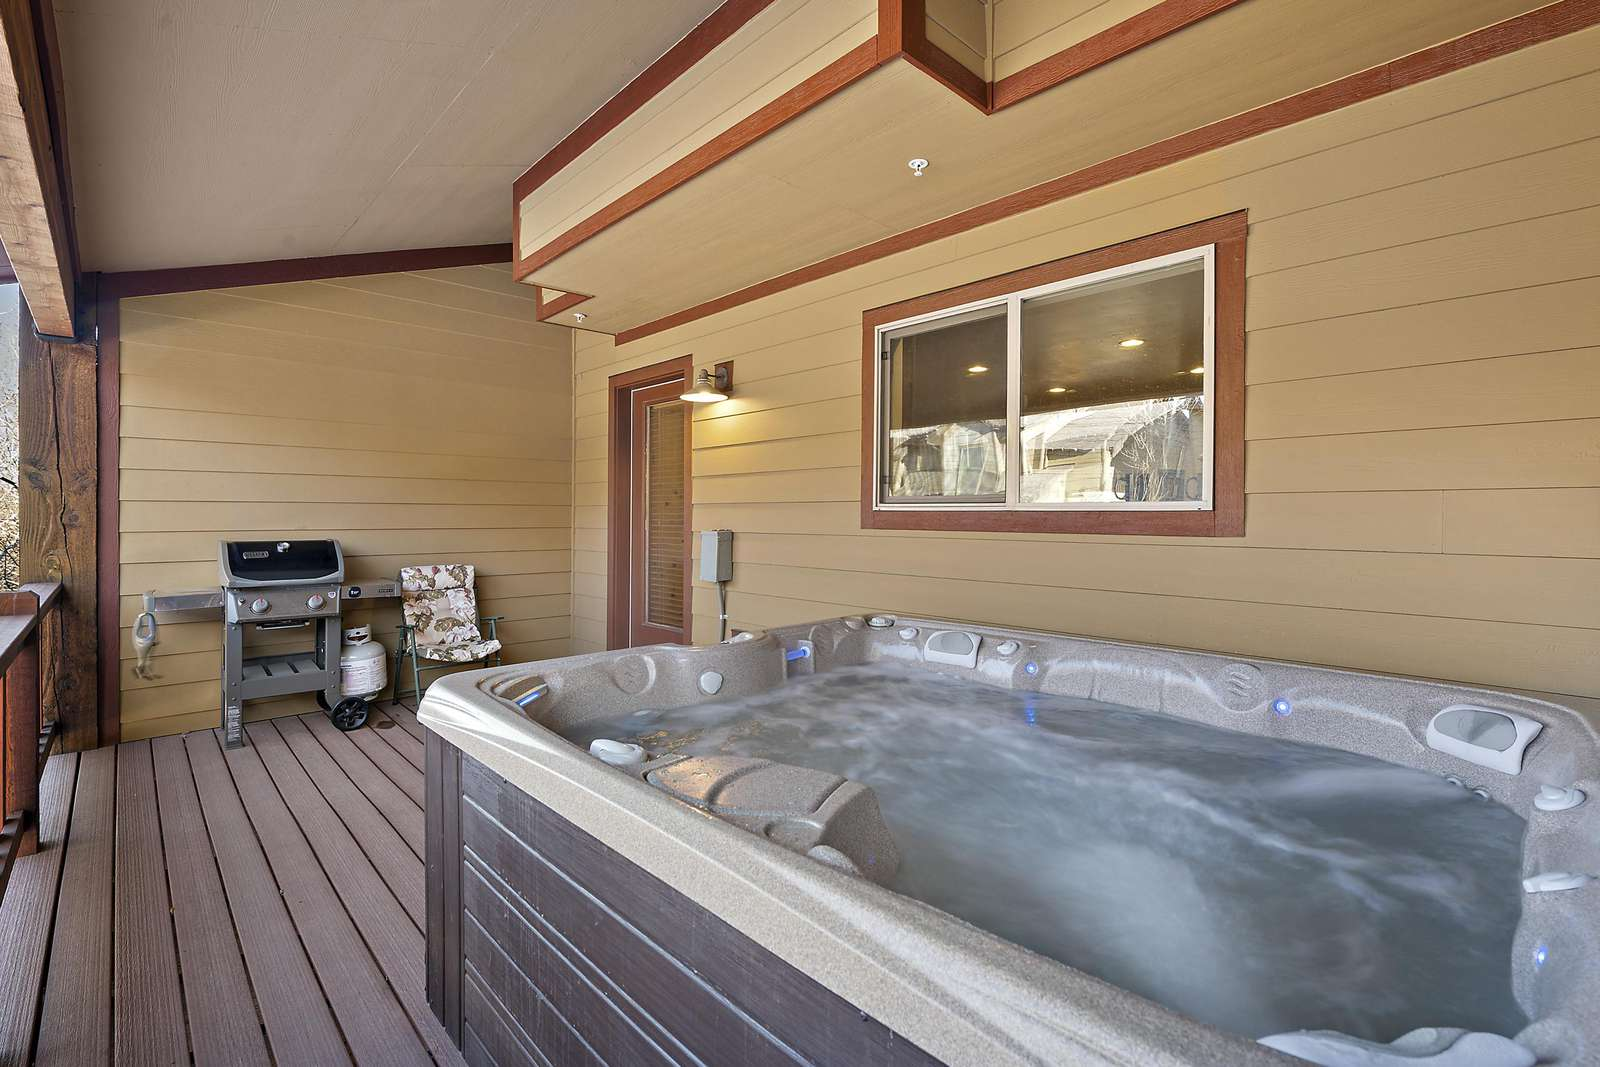 Private deck space with BBQ and hot tub